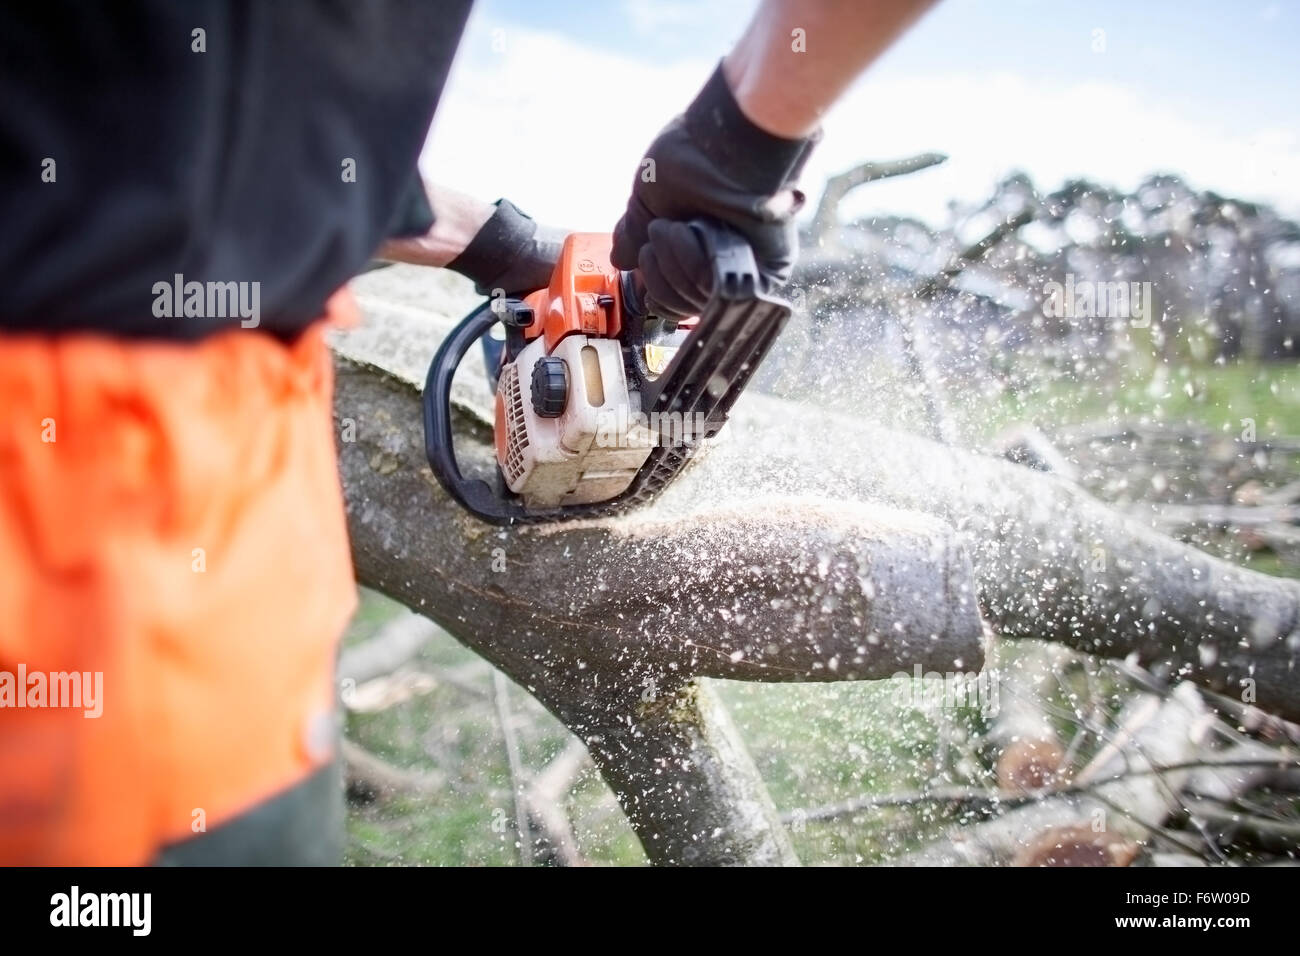 Lumberjack sawing tree trunk - Stock Image